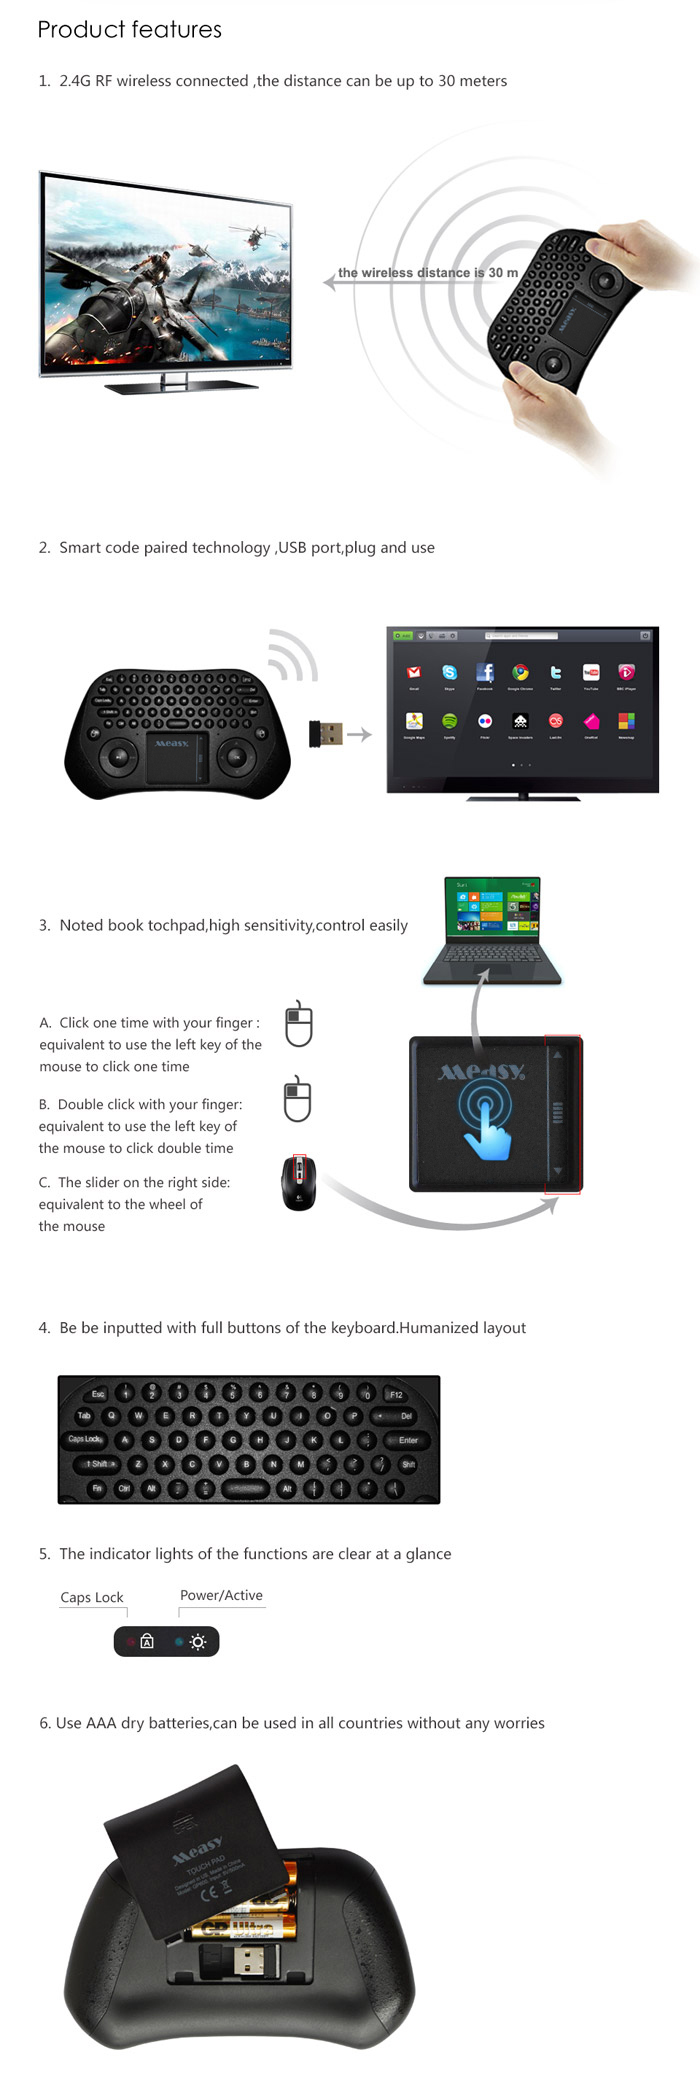 MEASY GP800 2.4GHz Wireless Keyboard Air Smart Mouse Tochpad Remote Control for TV Box / Laptop / Tablet PC